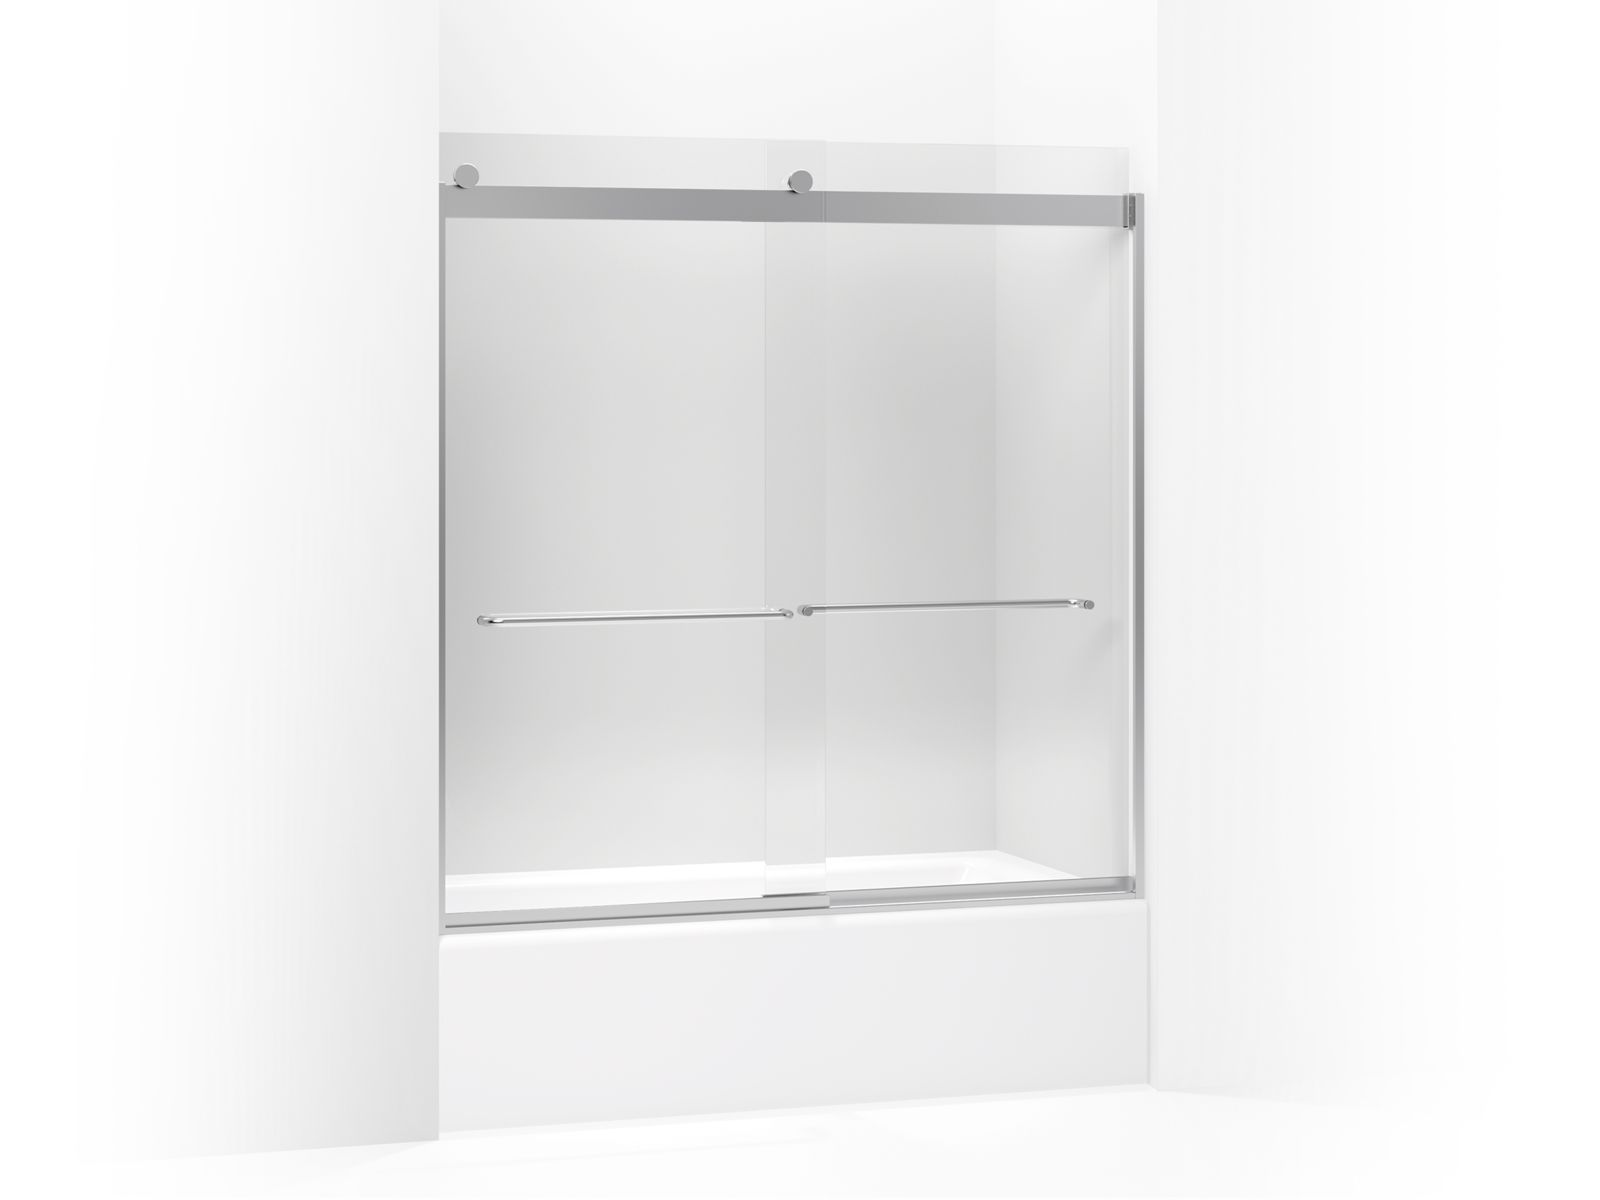 "Levity™ Sliding bath door with towel bar and 1/4"" crystal clear glass"